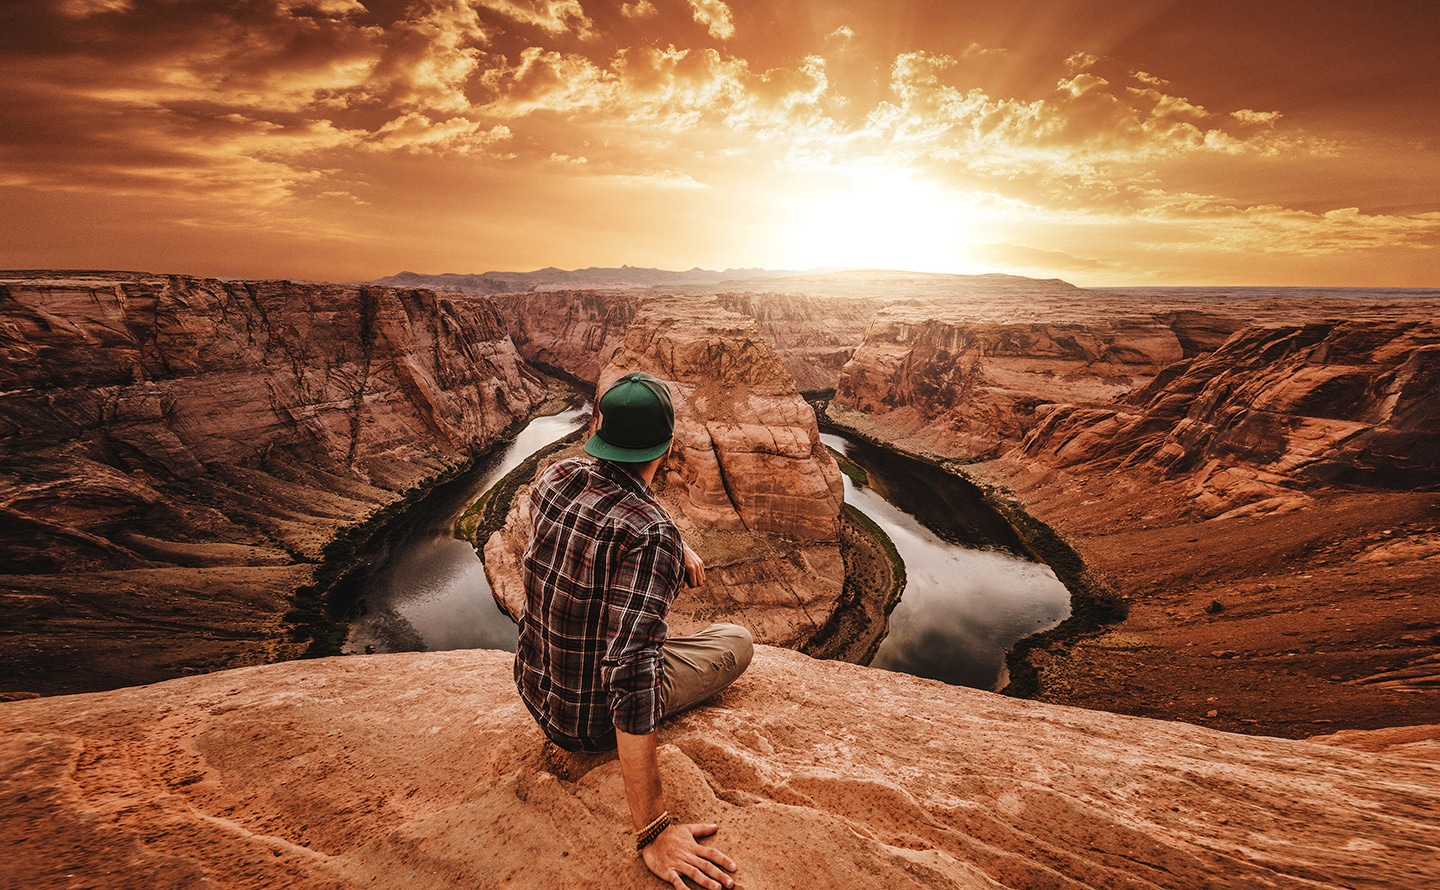 Photo captured by Galaxy A's Ultra Wide camera of a man sitting overlooking a canyon.